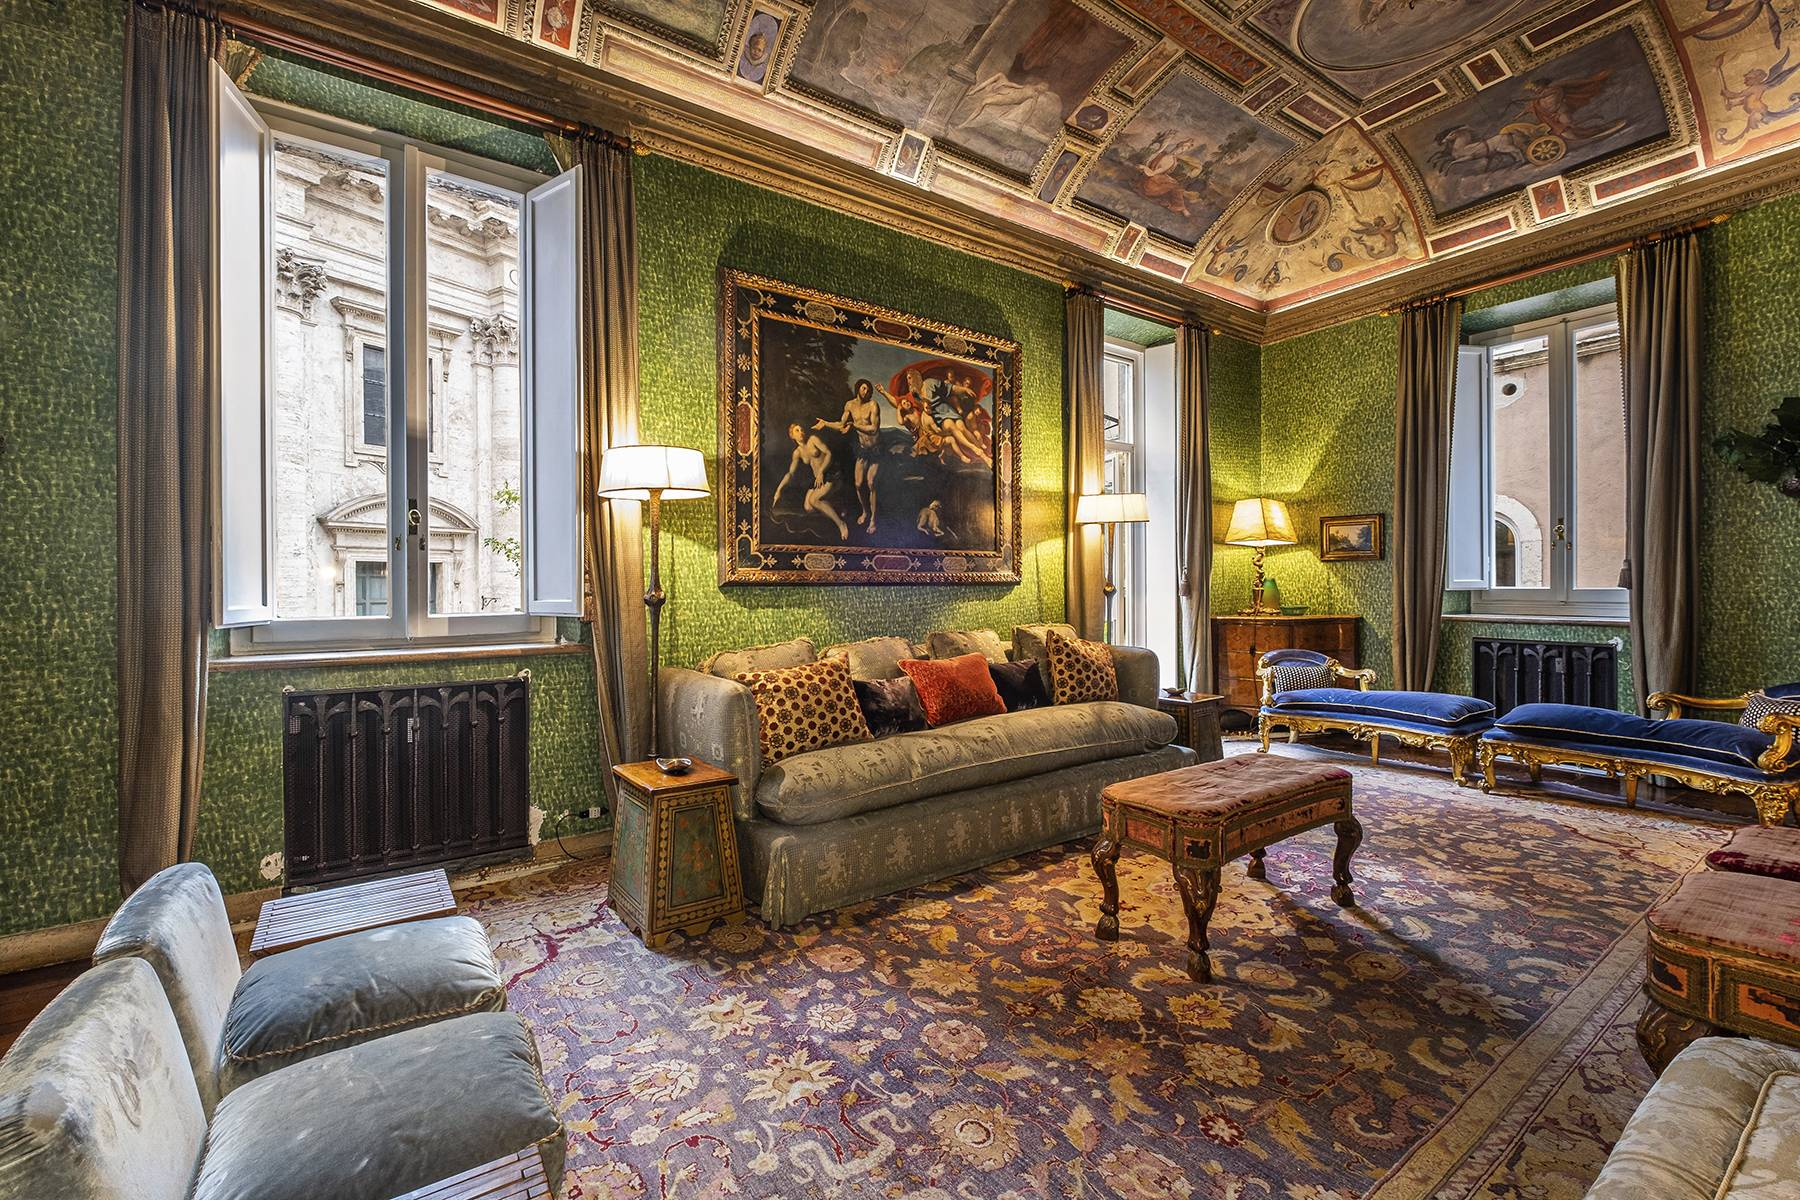 Magnificent noble floor with frescos and terrace in a XVI century palace - 6